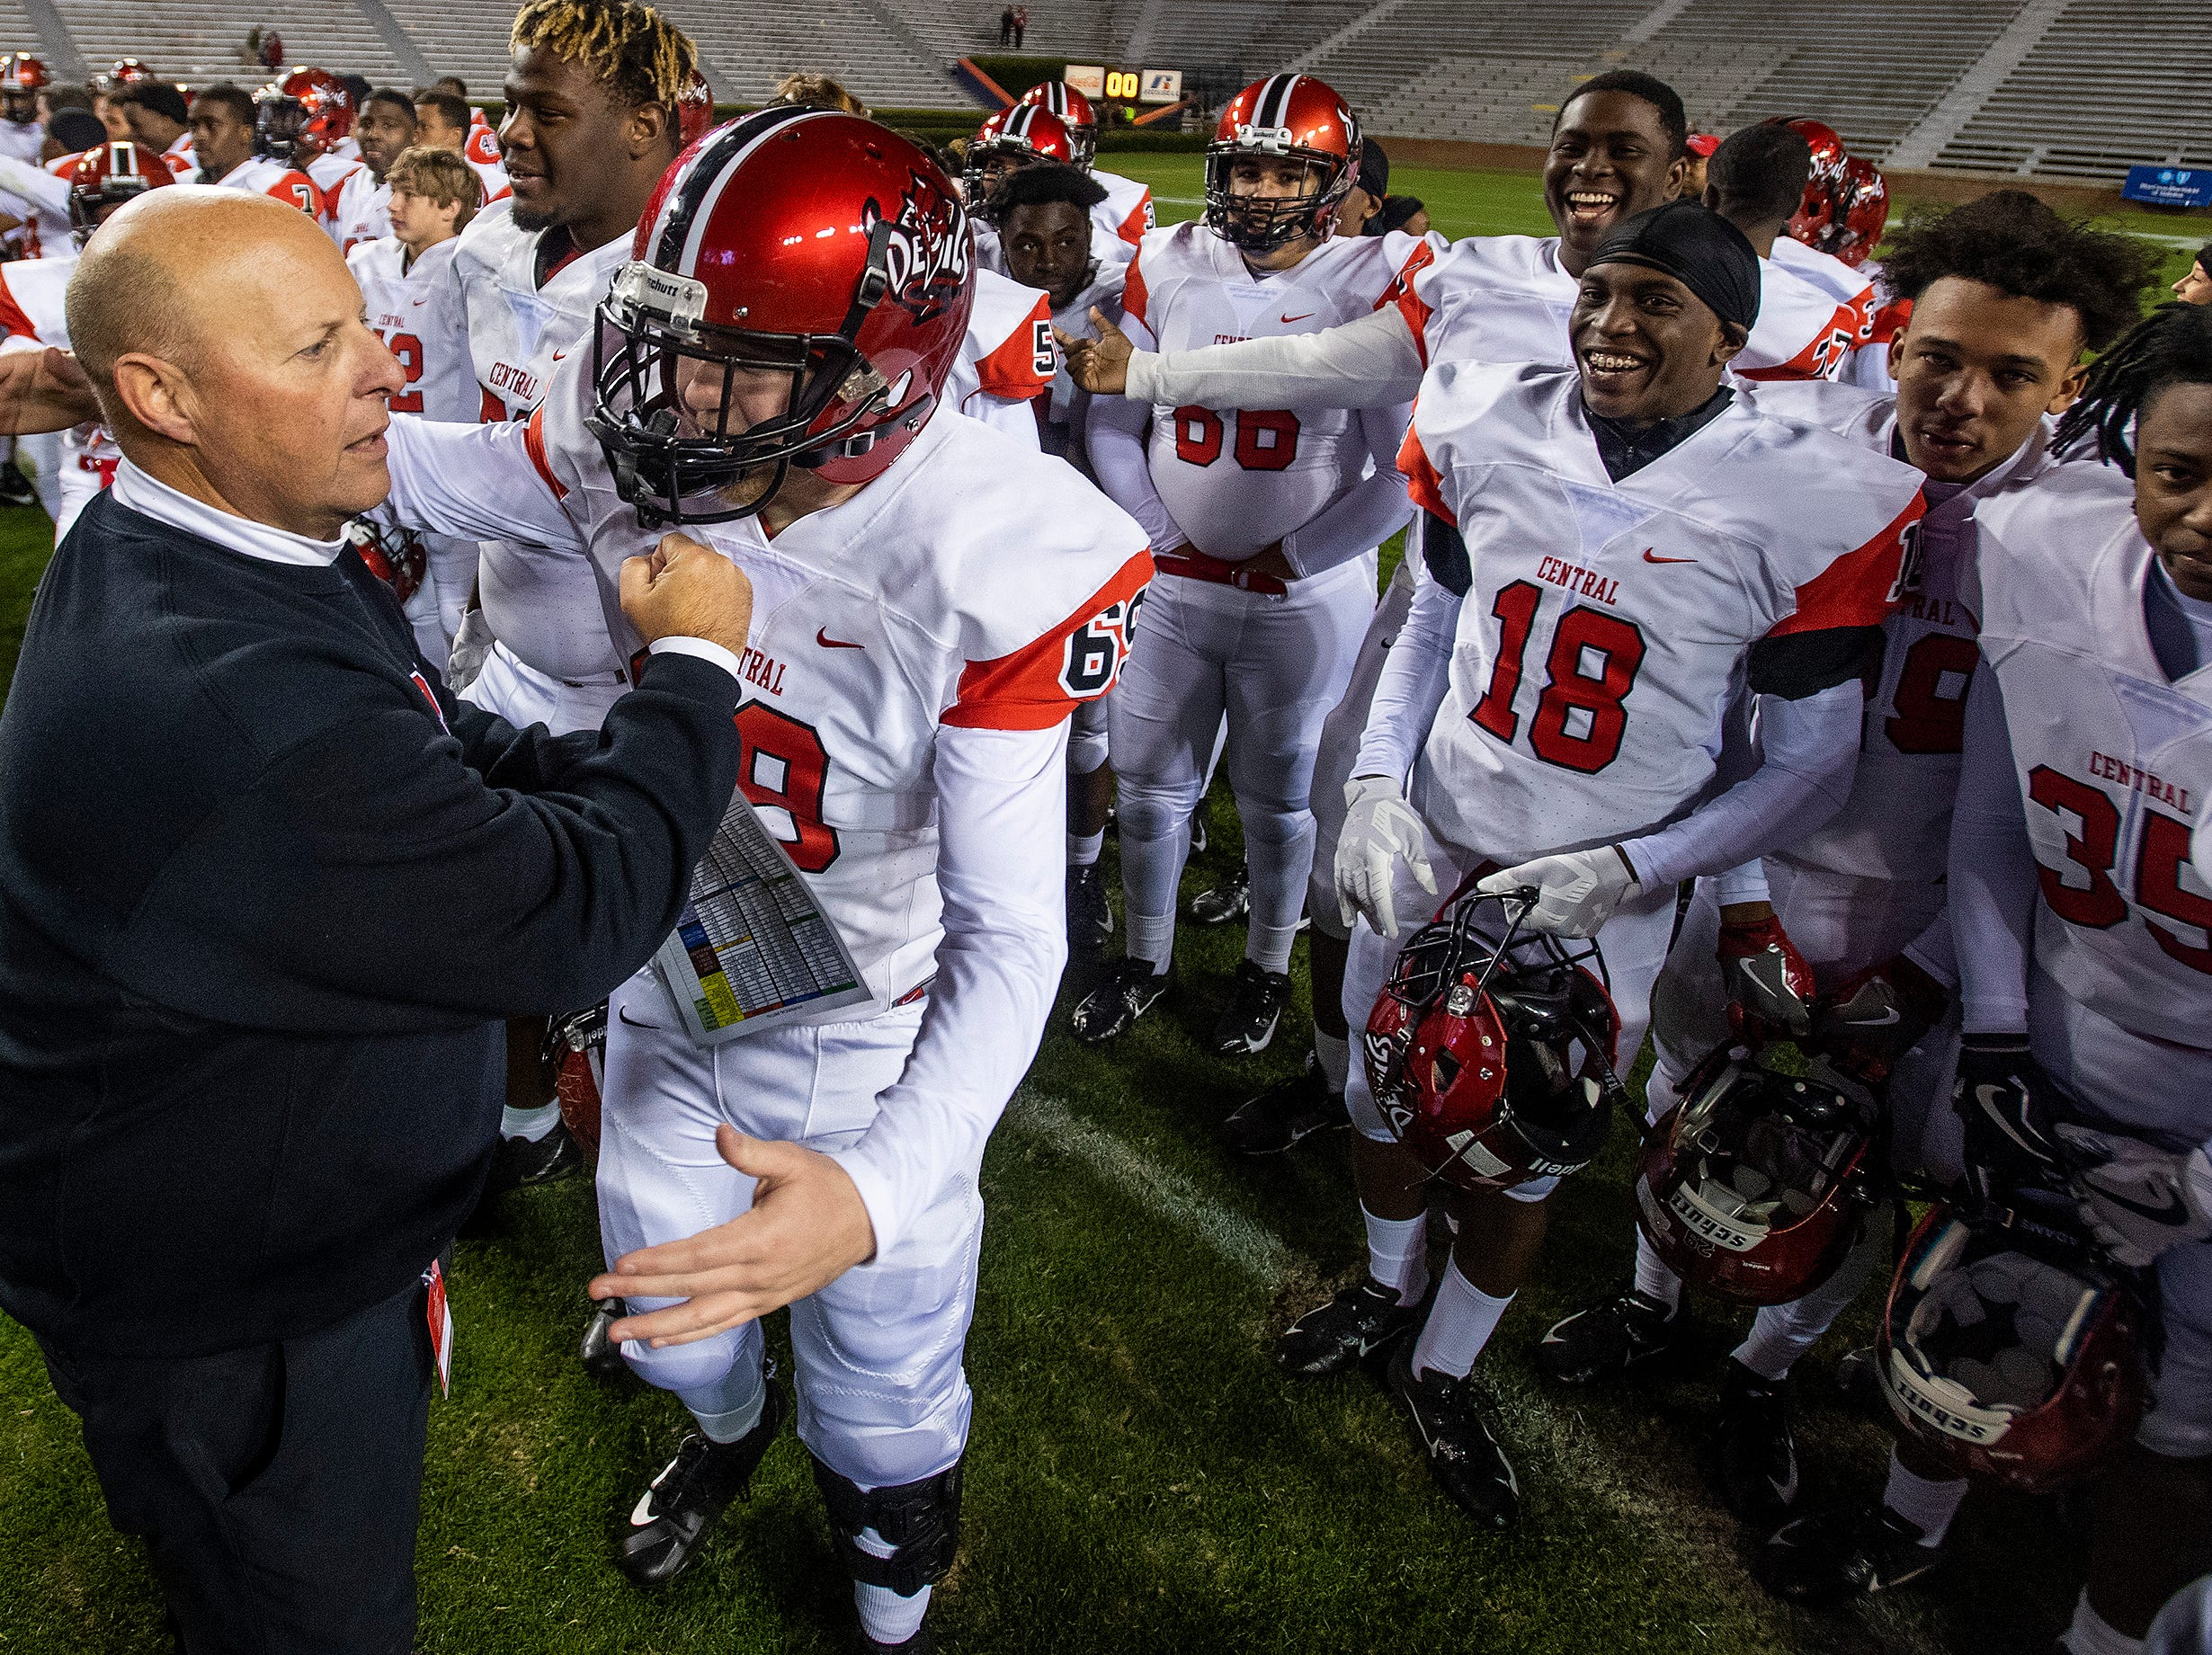 Central-Phenix City coach Jamey DuBose with his players after defeating Thompson in the AHSAA Class 7A State Championship Football Game at Jordan Hare Stadium in Auburn, Ala., on Wednesday evening December 5, 2018.